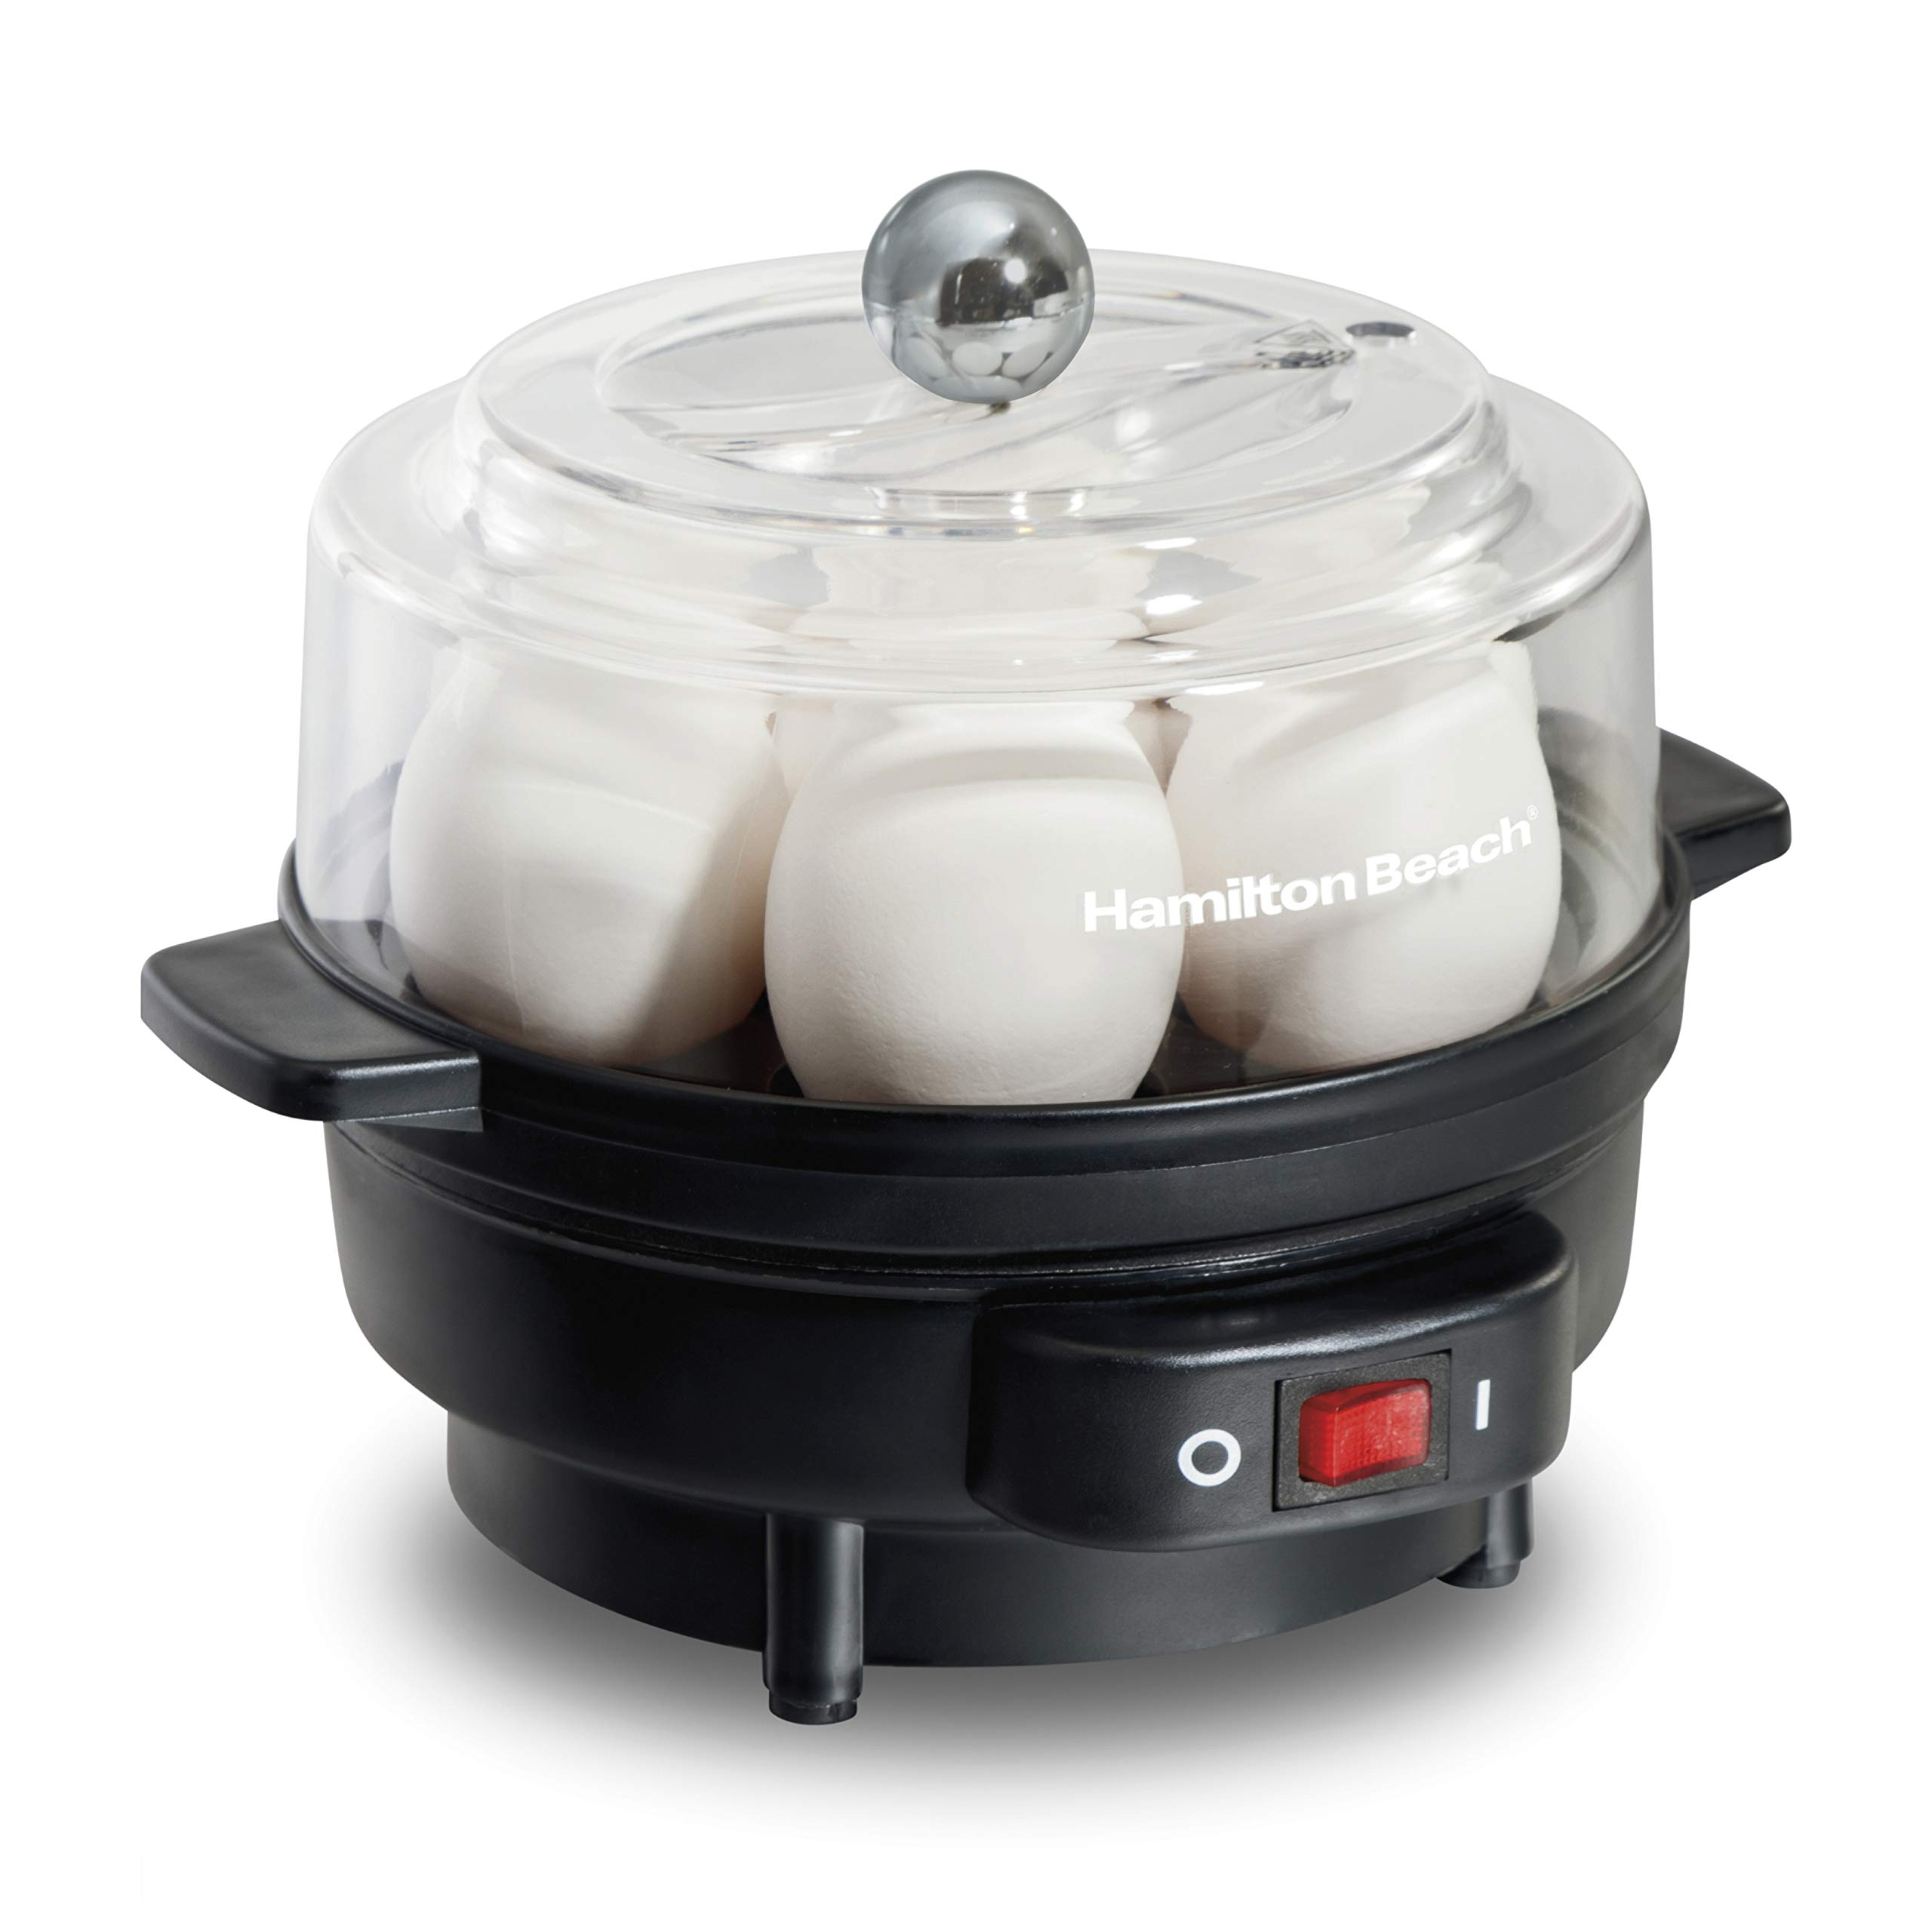 Hamilton Beach Electric Egg Cooker and Poacher for Soft, Hard Boiled or Poached with Ready Timer (25500), Holds 7, Black by Hamilton Beach